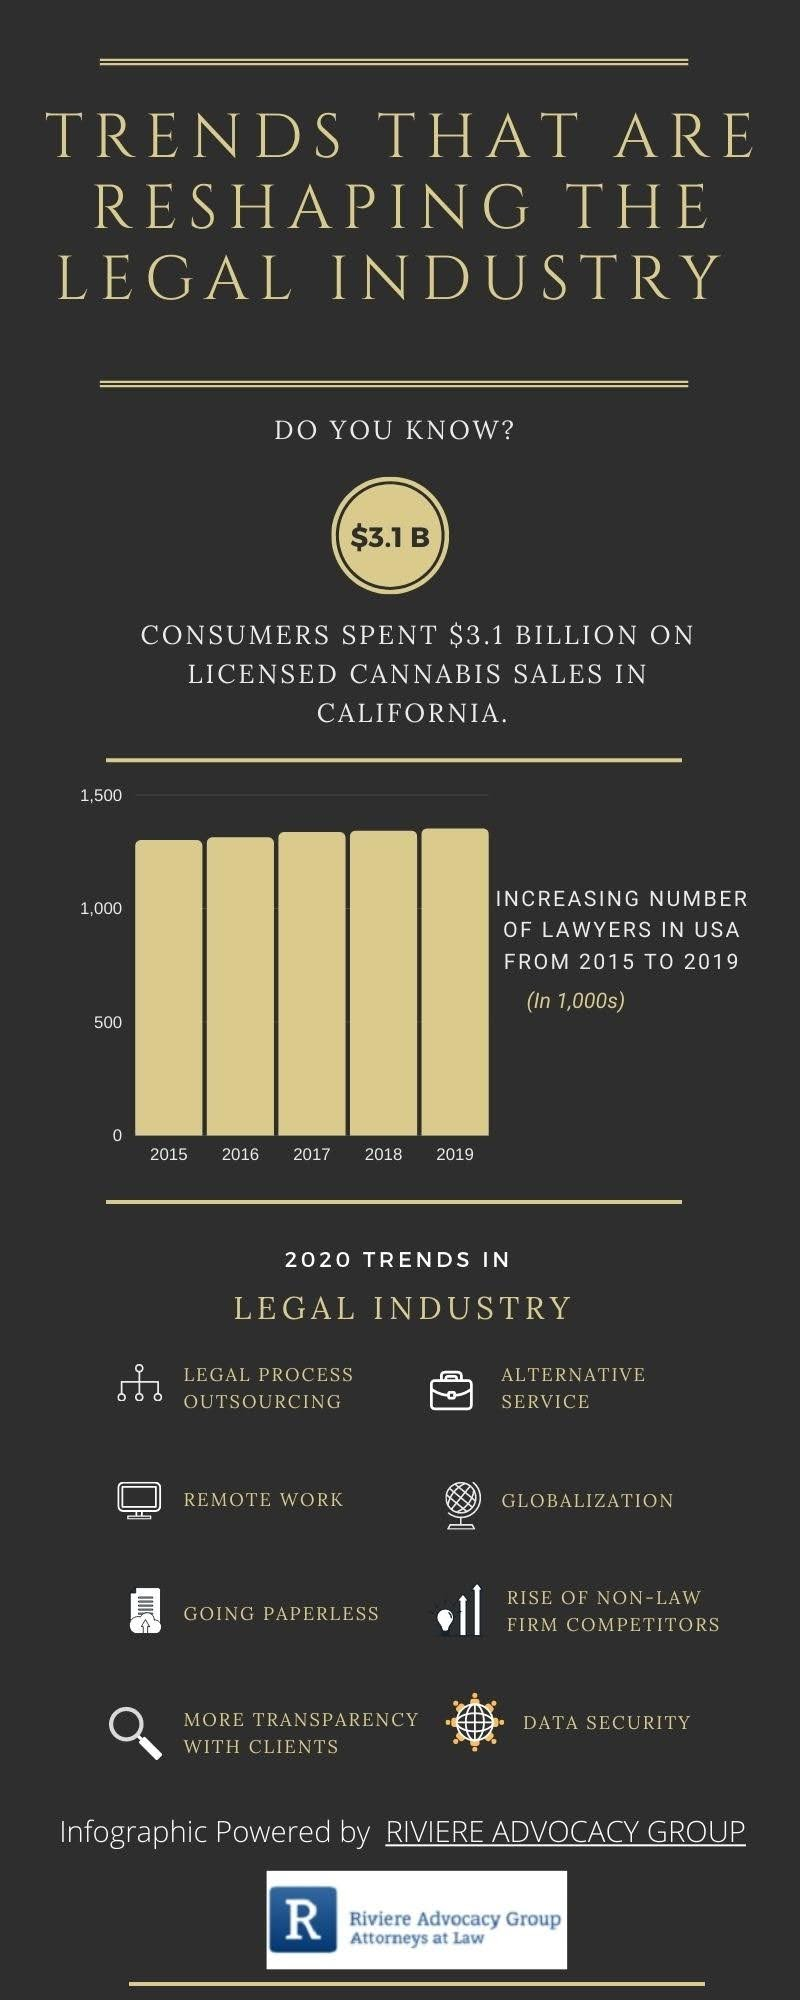 trends-that-are-reshaping-the-legal-industry-infographic